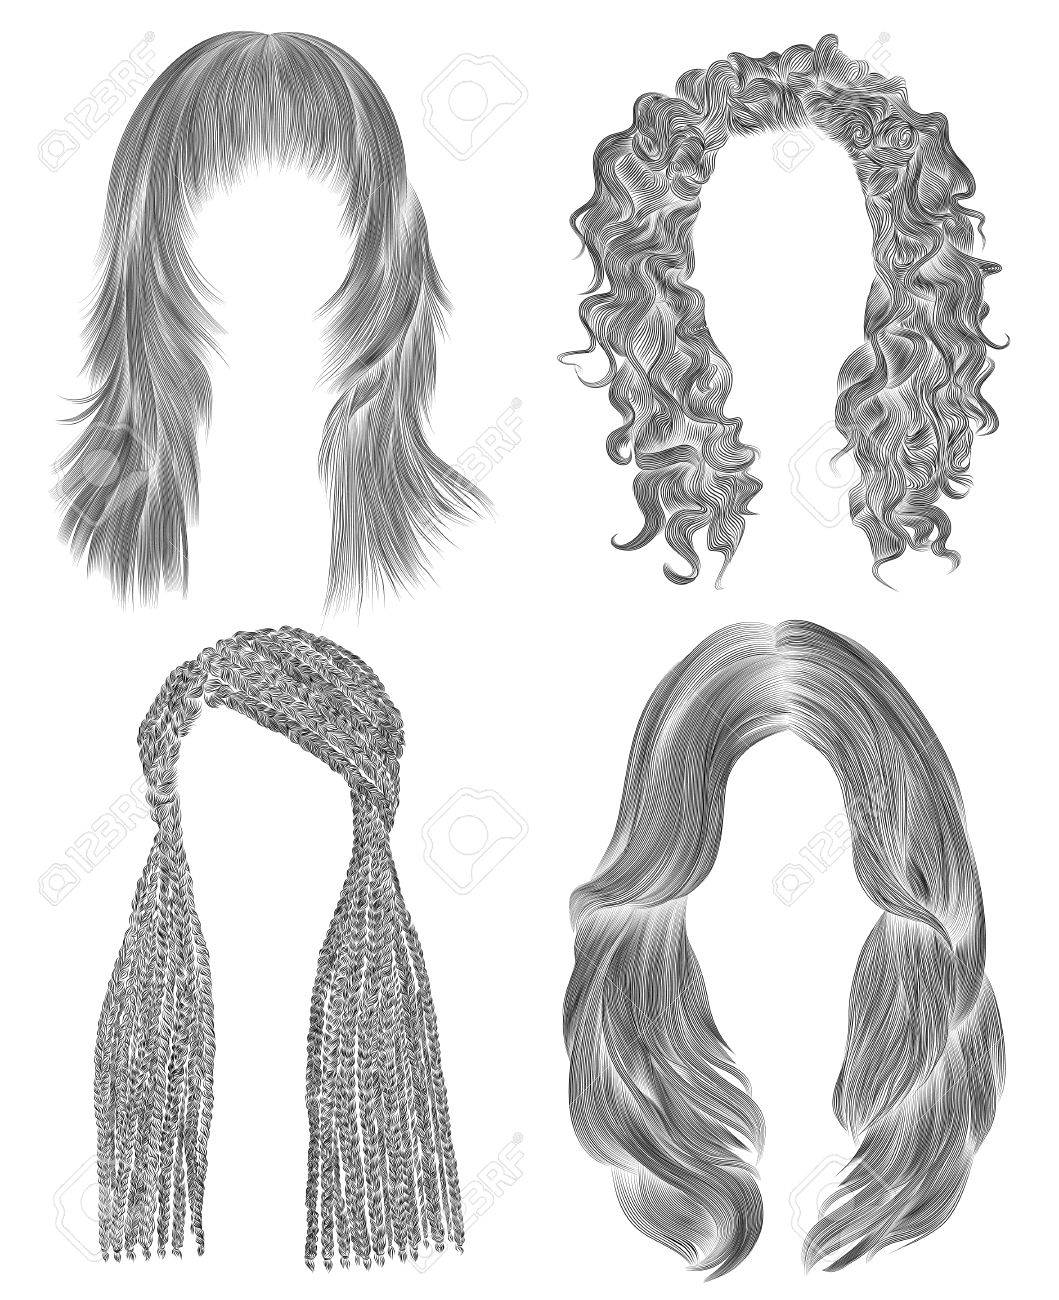 Set long woman hairs black pencil drawing sketch women fashion beauty style african